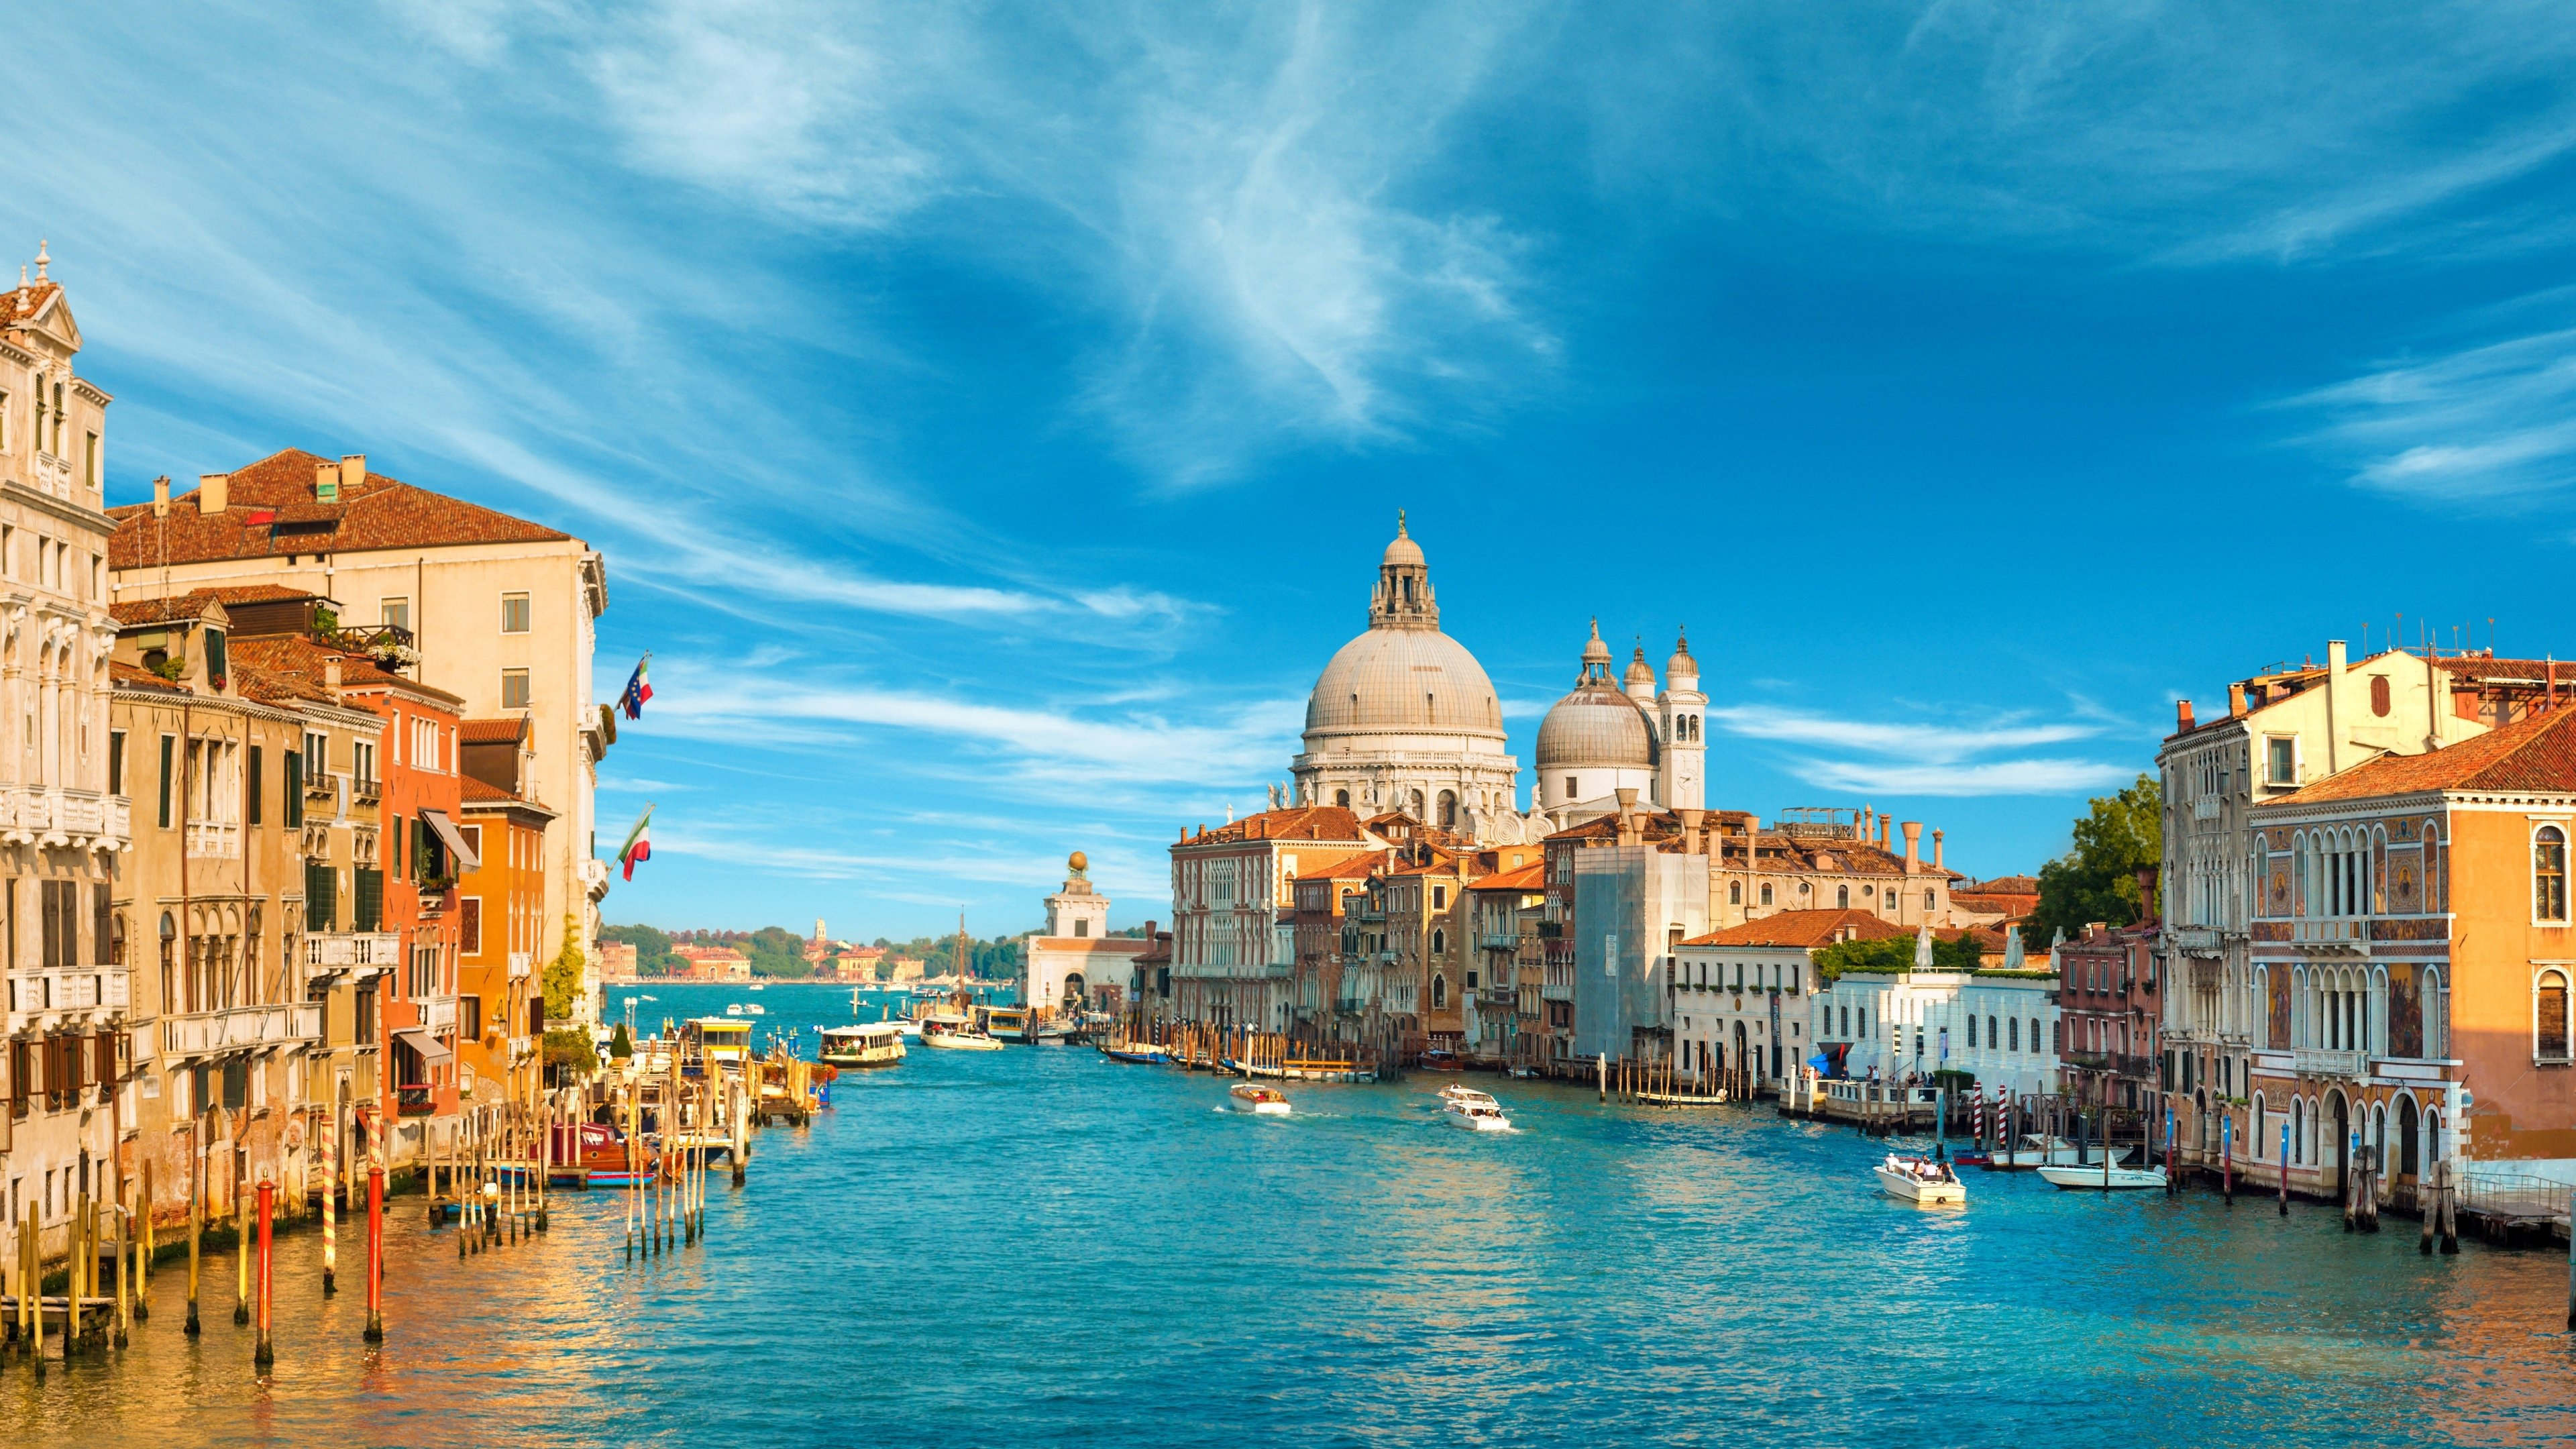 Venice grand Canal Ultra HD wallpaper UHD WallpapersNet 3840x2160